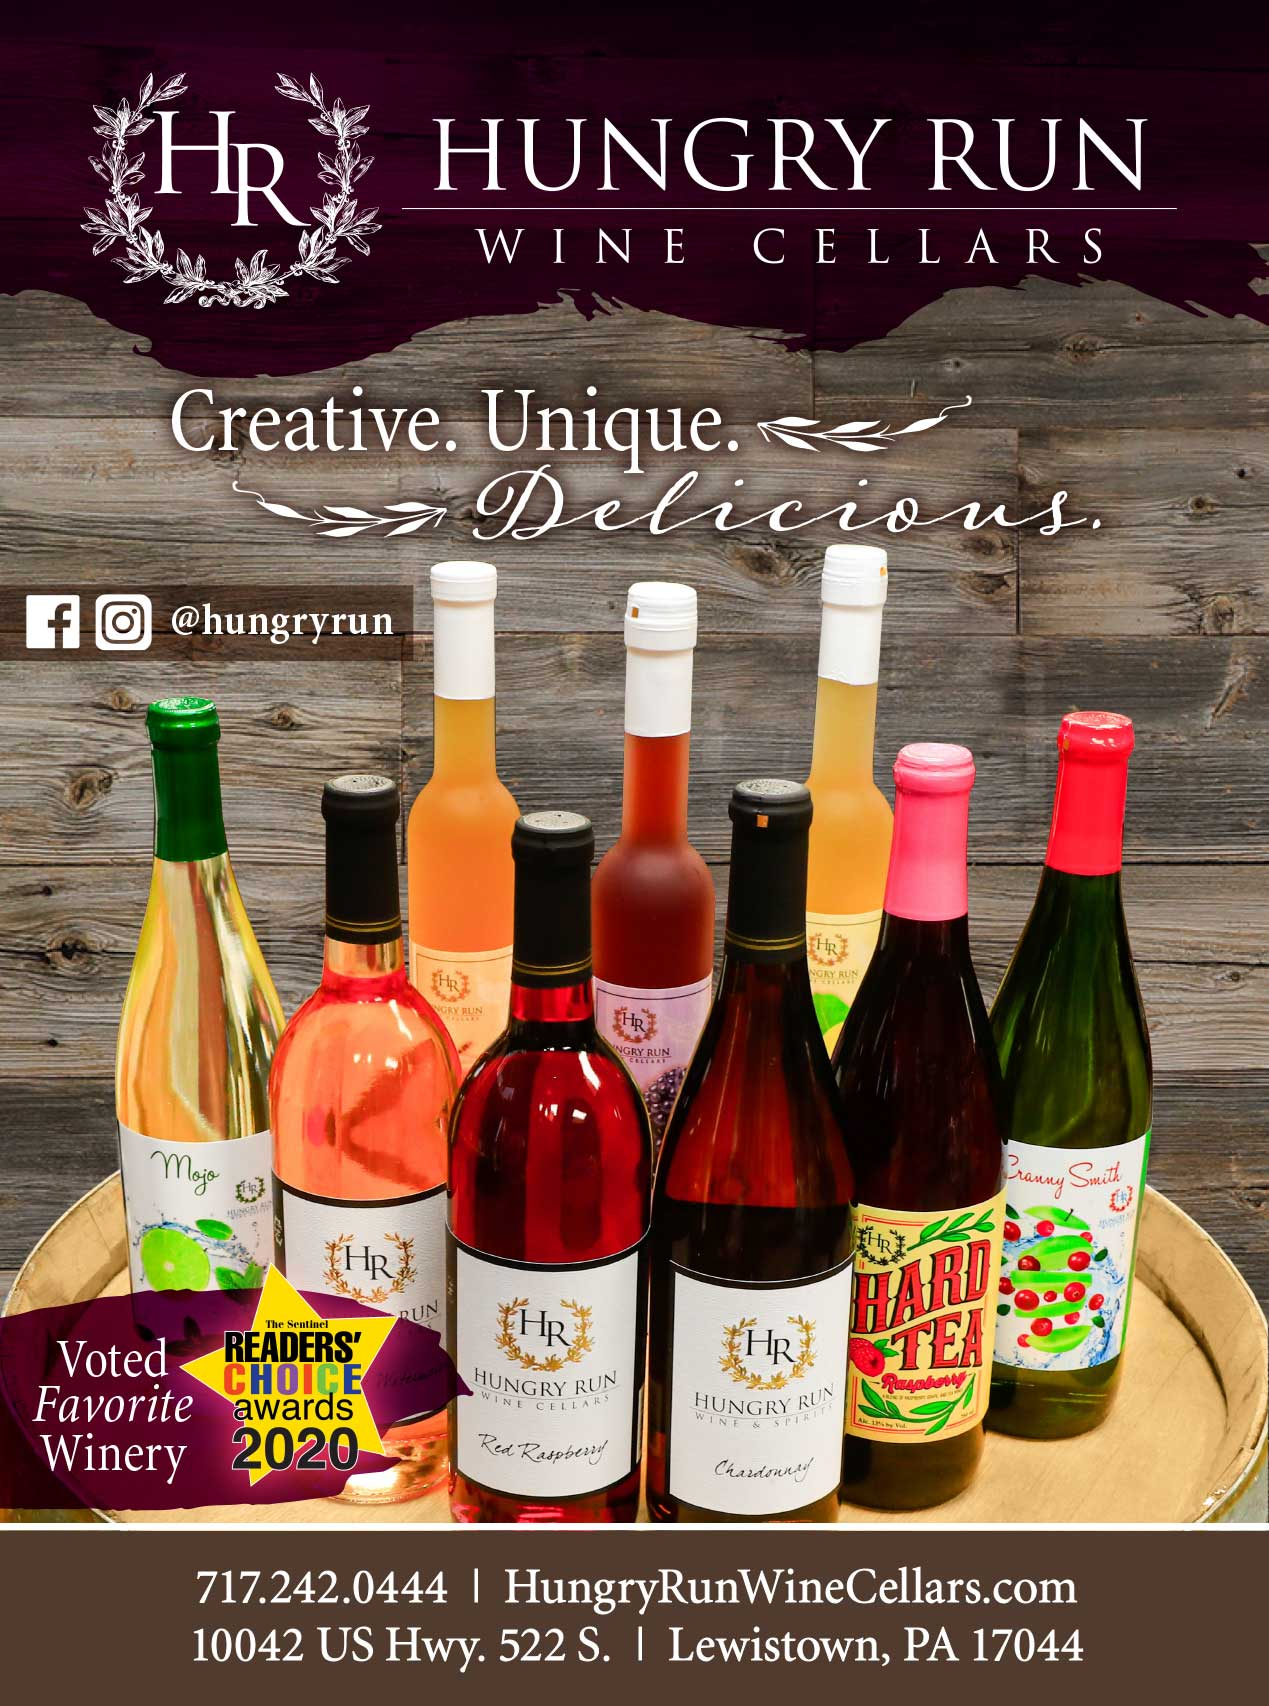 "<center>Hungry Run Wine Cellars | <b><a href=""https://hungryrunwinecellars.com"" target=""_blank"" rel=""noopener noreferrer"">CLICK HERE to view the website</a></b></center>"